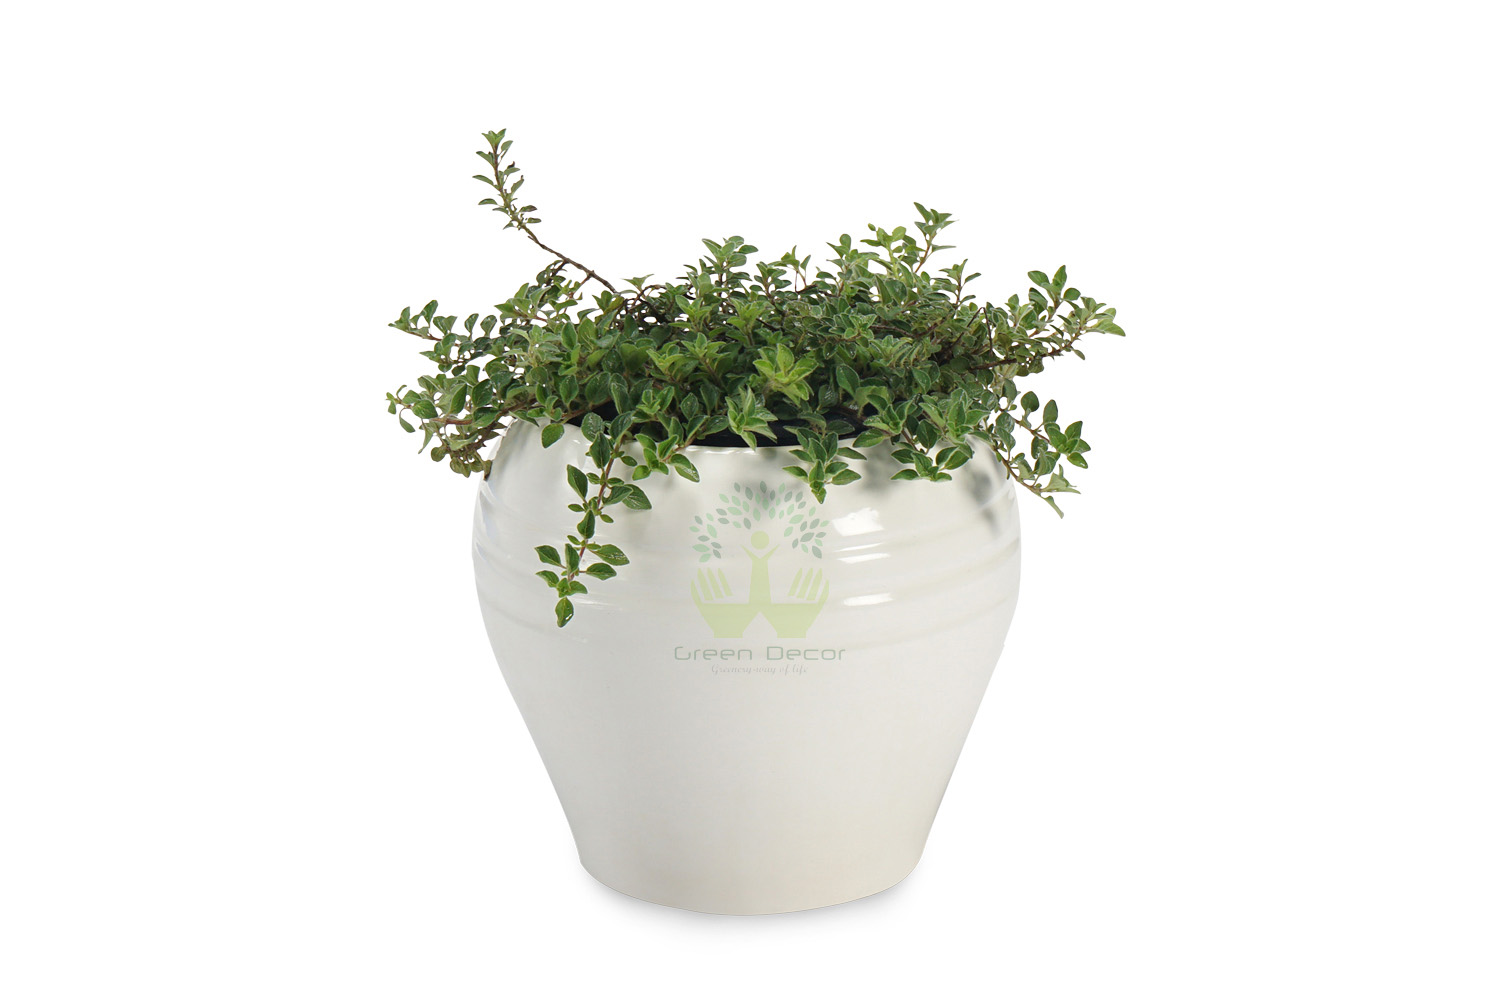 Buy Sage Plants , White Pots and seeds in Delhi NCR by the best online nursery shop Greendecor.